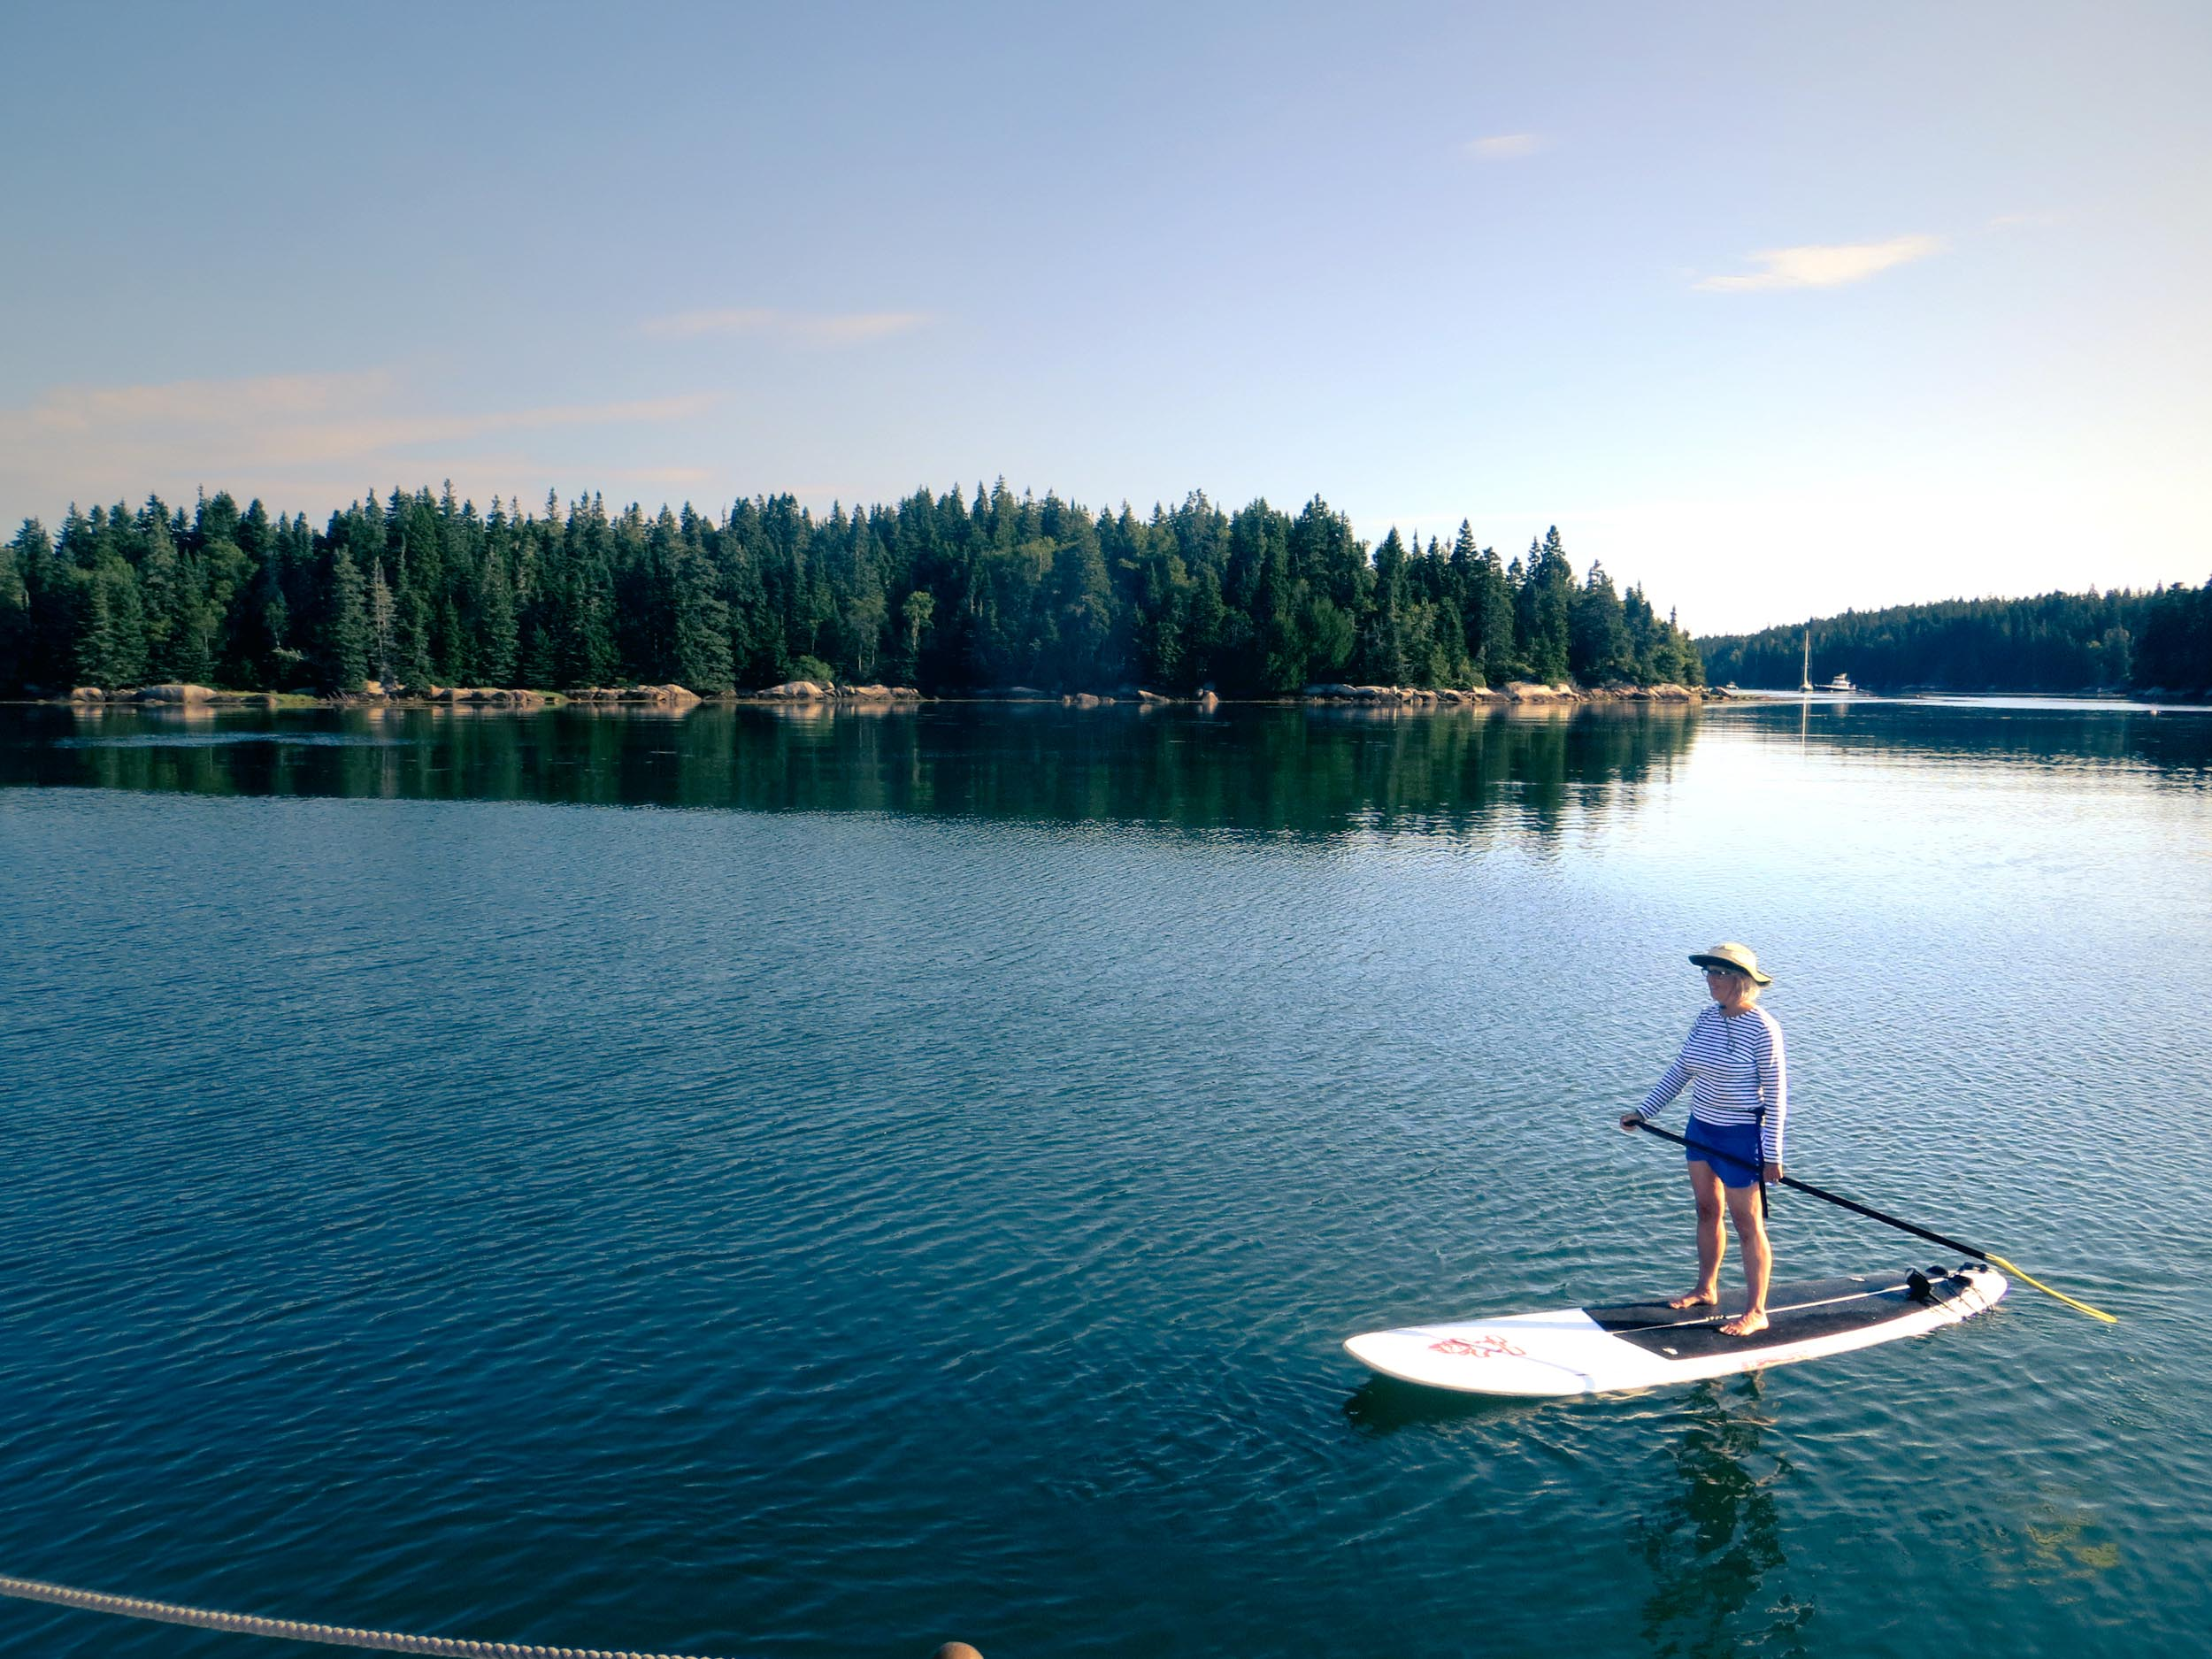 Give stand-up paddle boarding a try. We've got two!